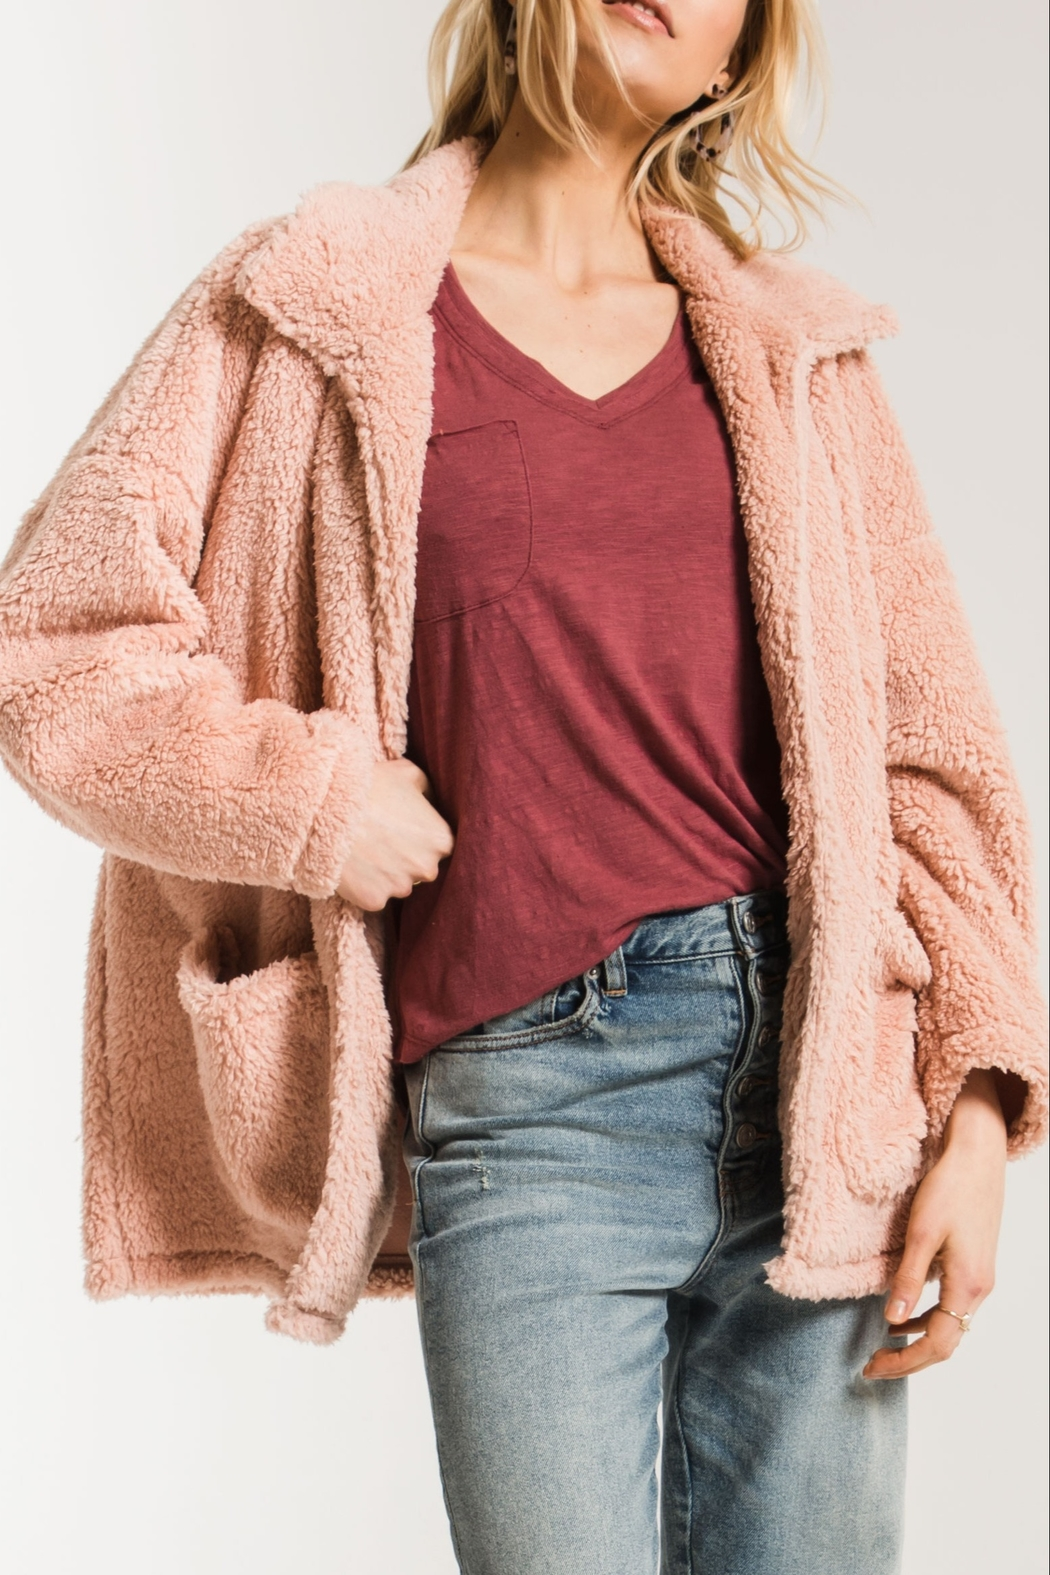 z supply Sherpa Teddy Jacket - Front Cropped Image